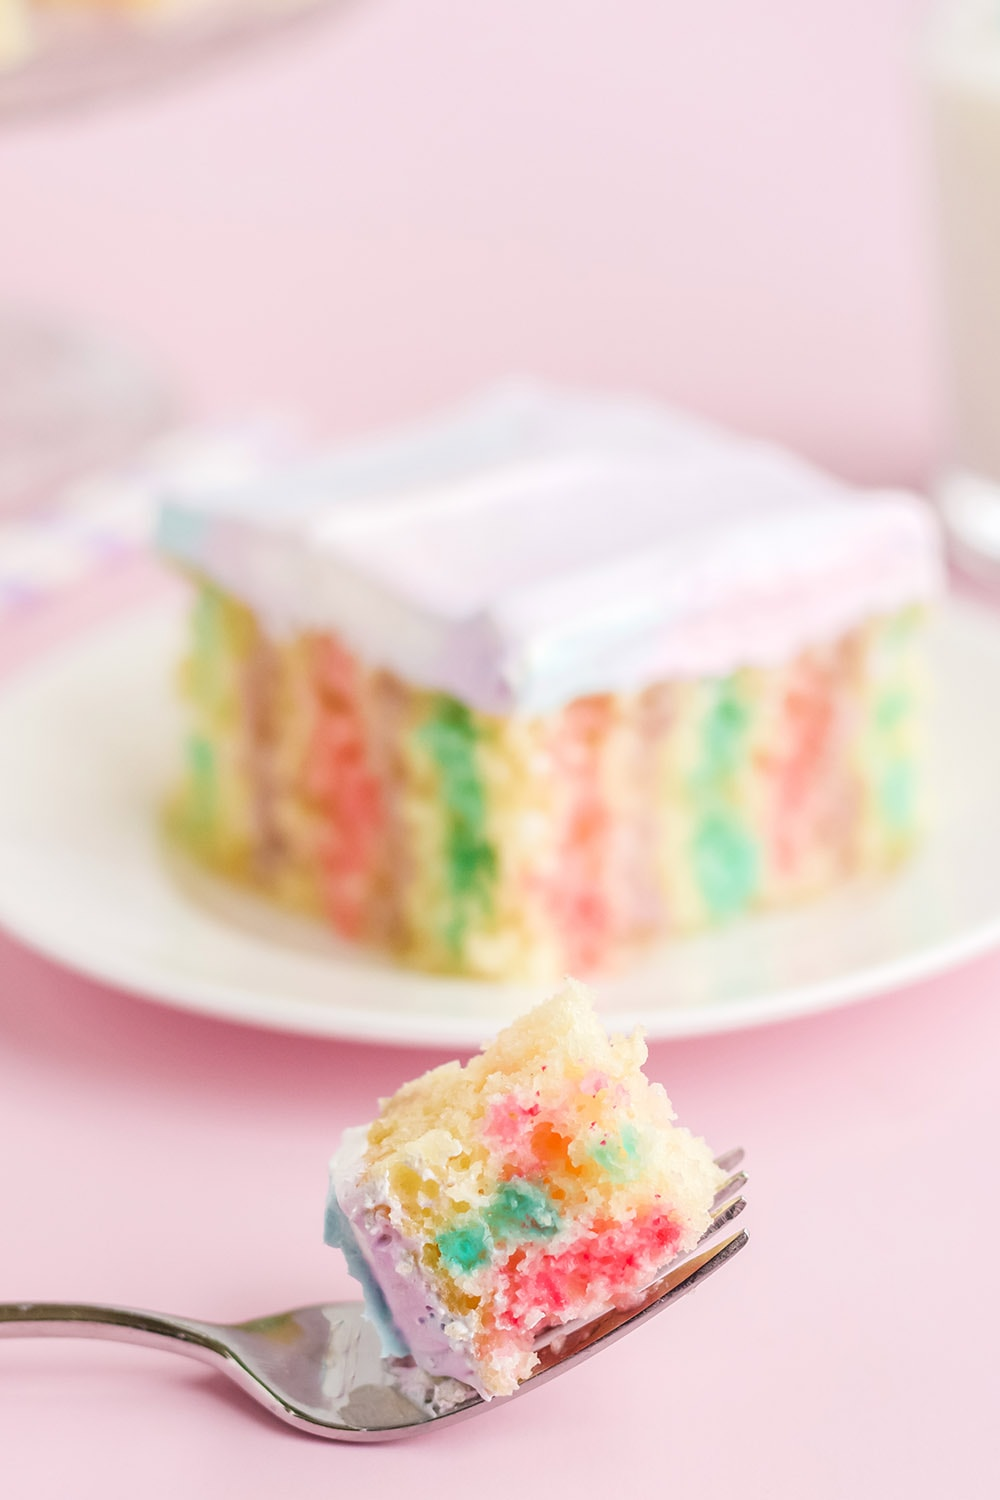 Colorful jello poke cake on a plate with a forkful in front.